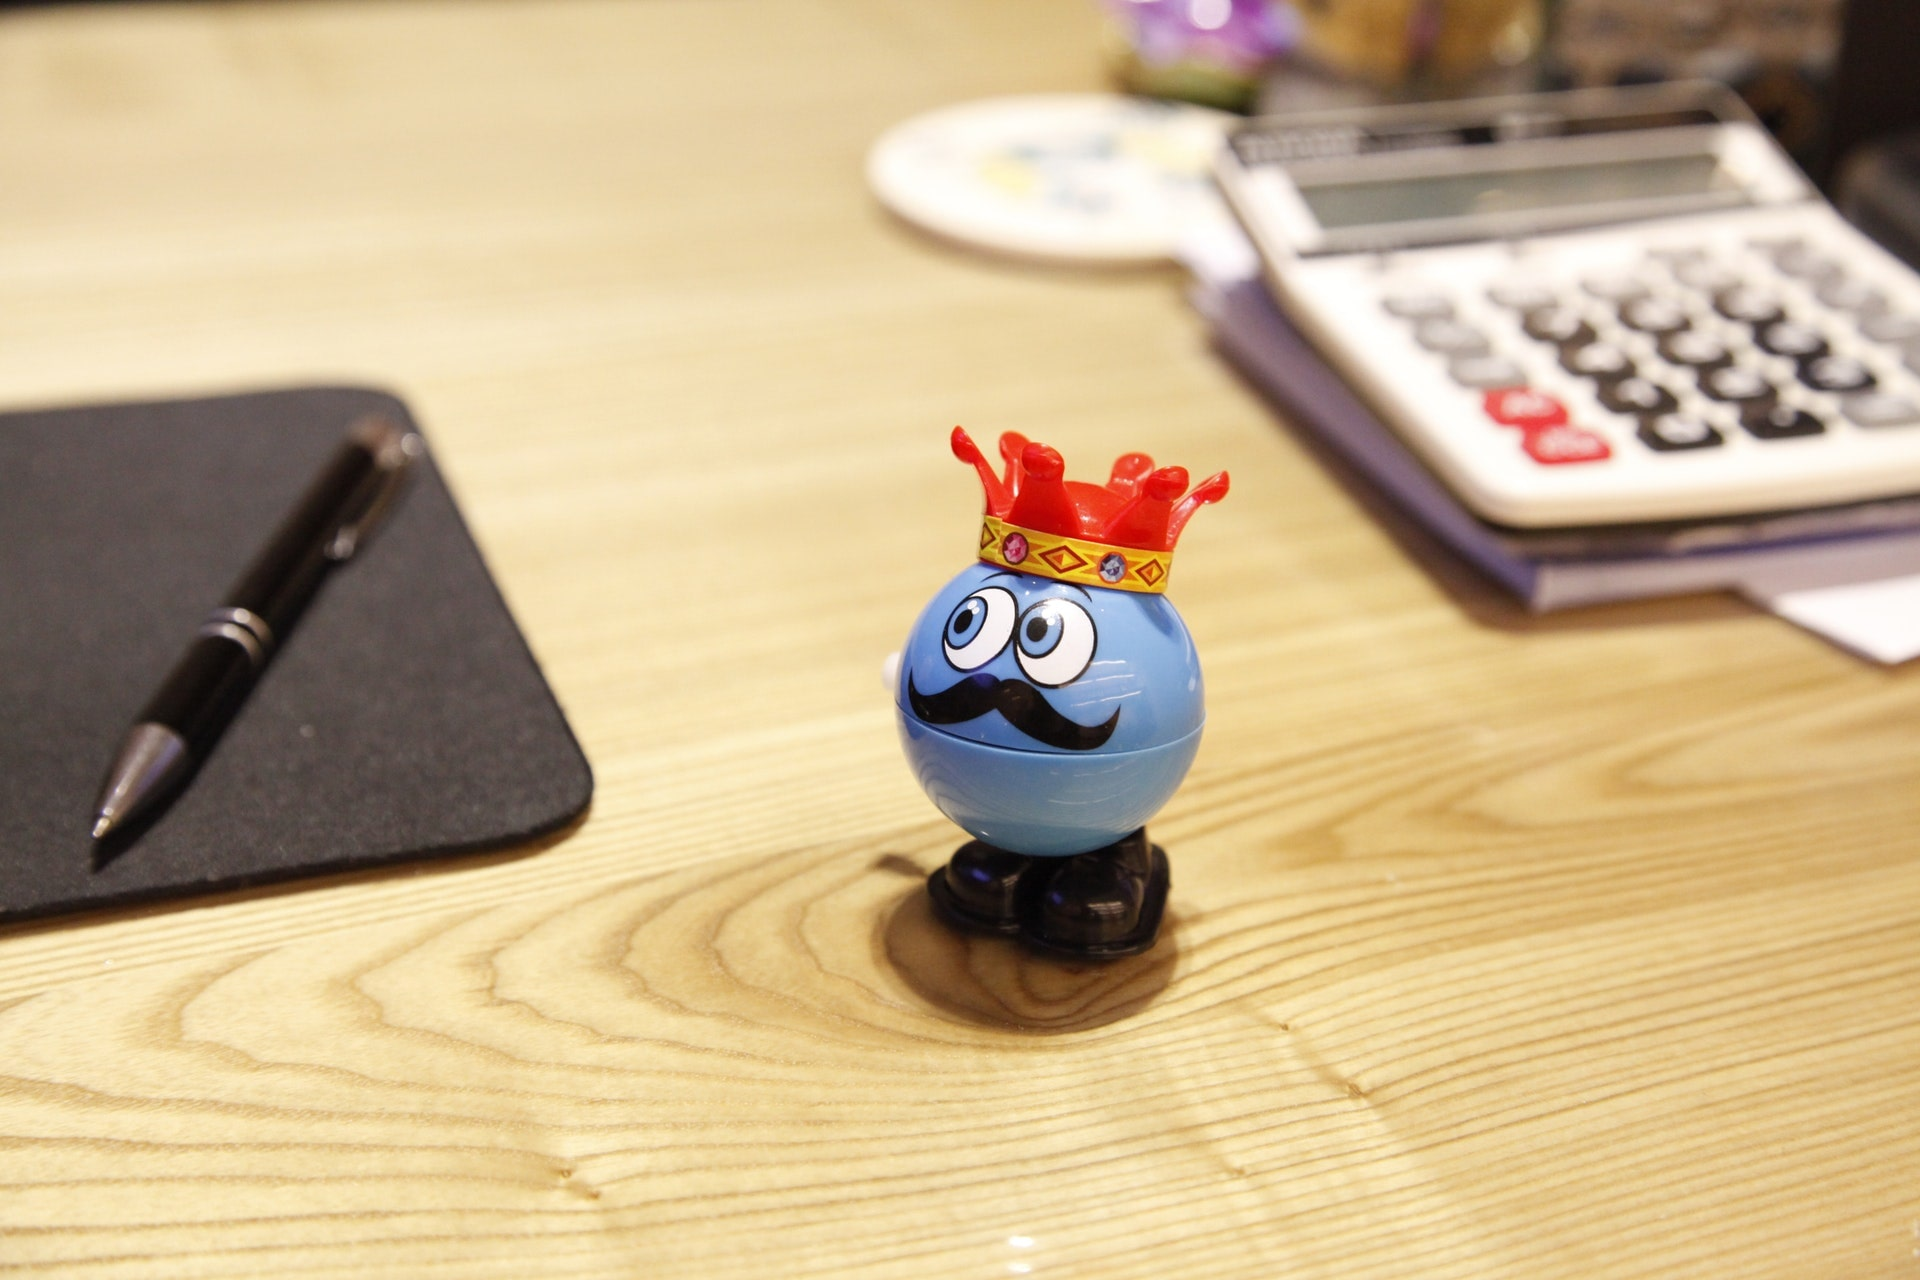 Desk toys and accessories help keep workplace psychology happy